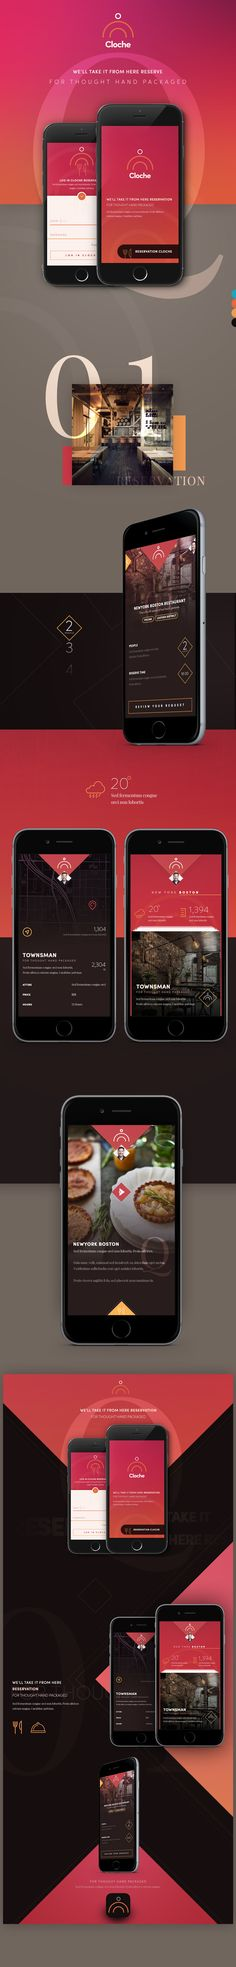 Cloche on Behance